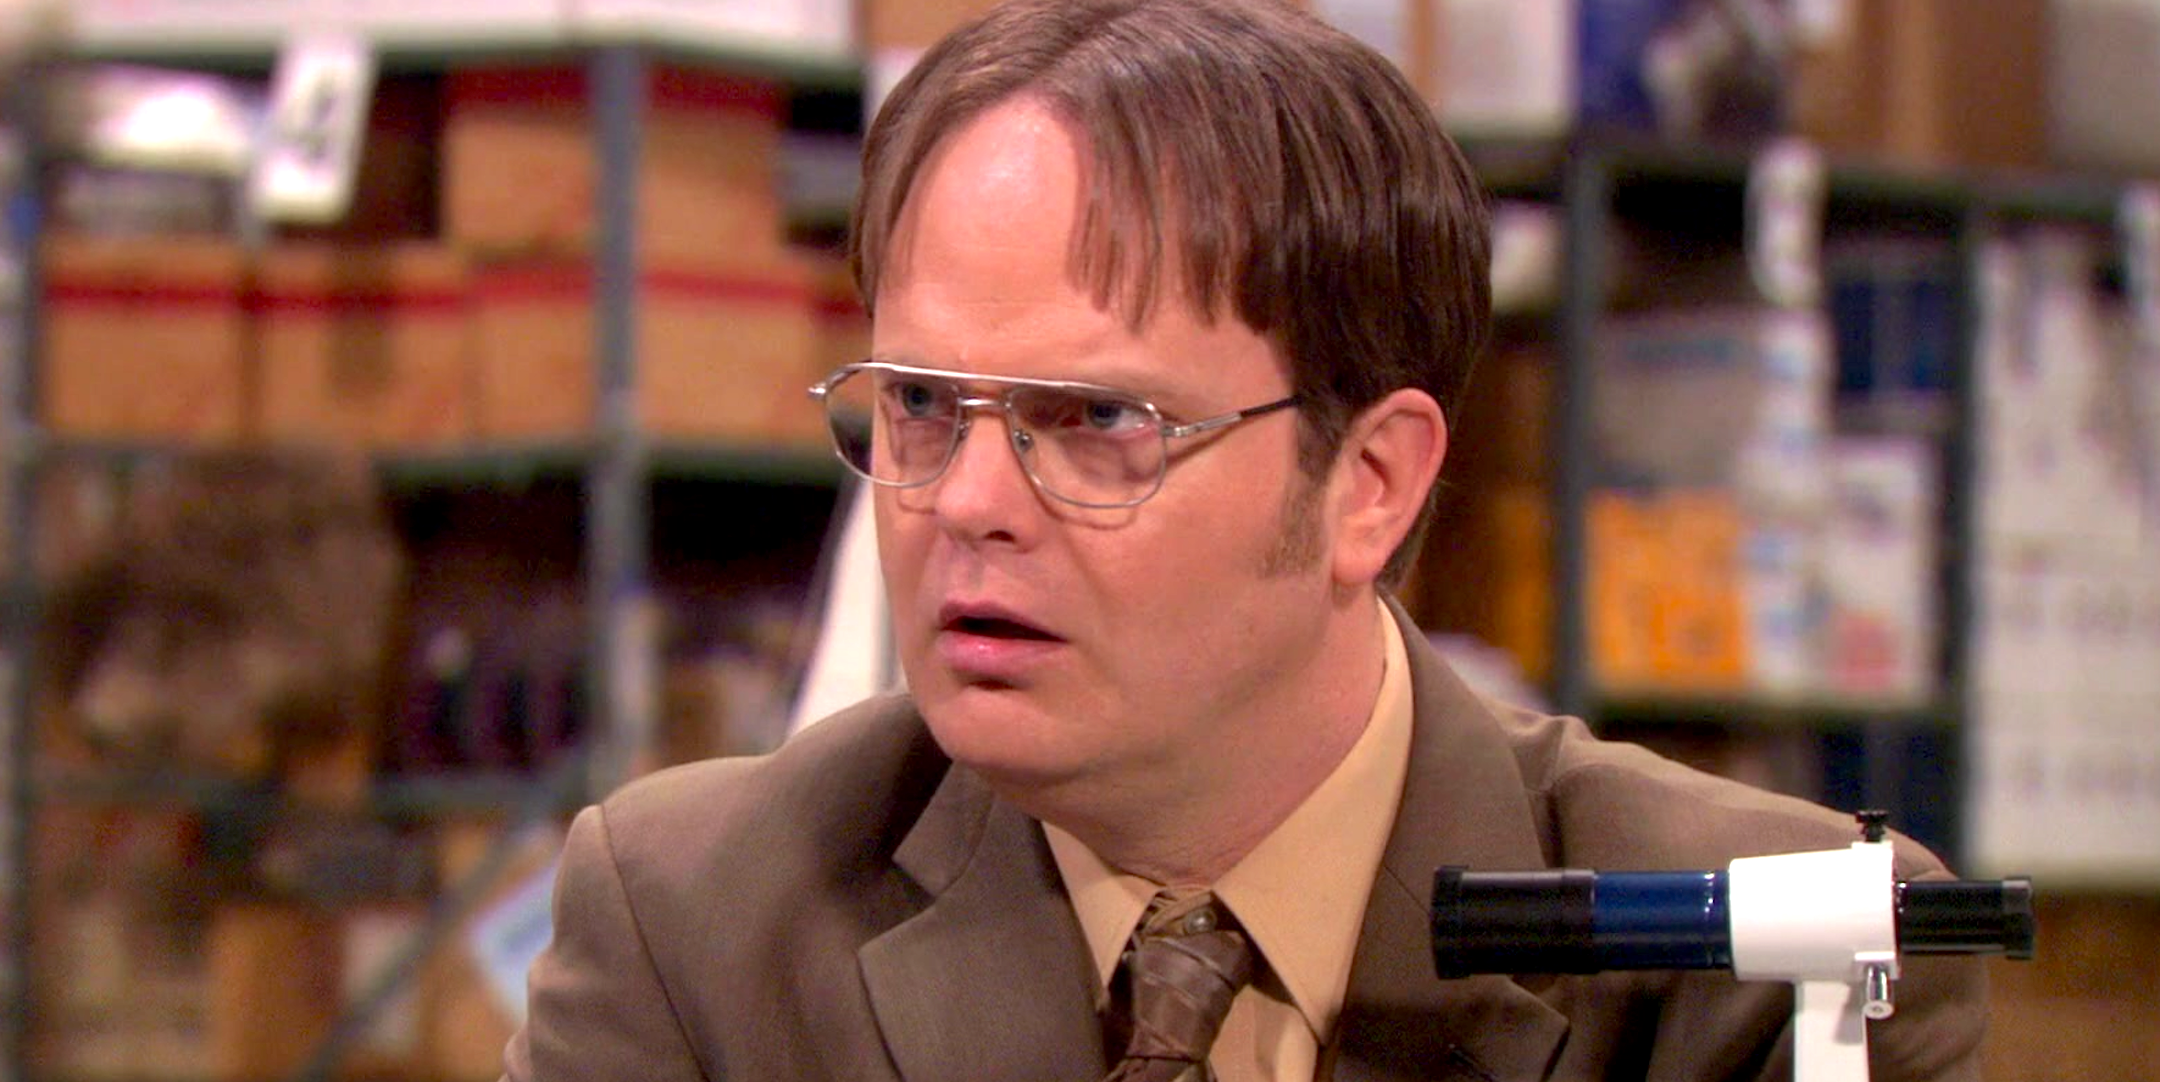 tv, the office, dwight schrute